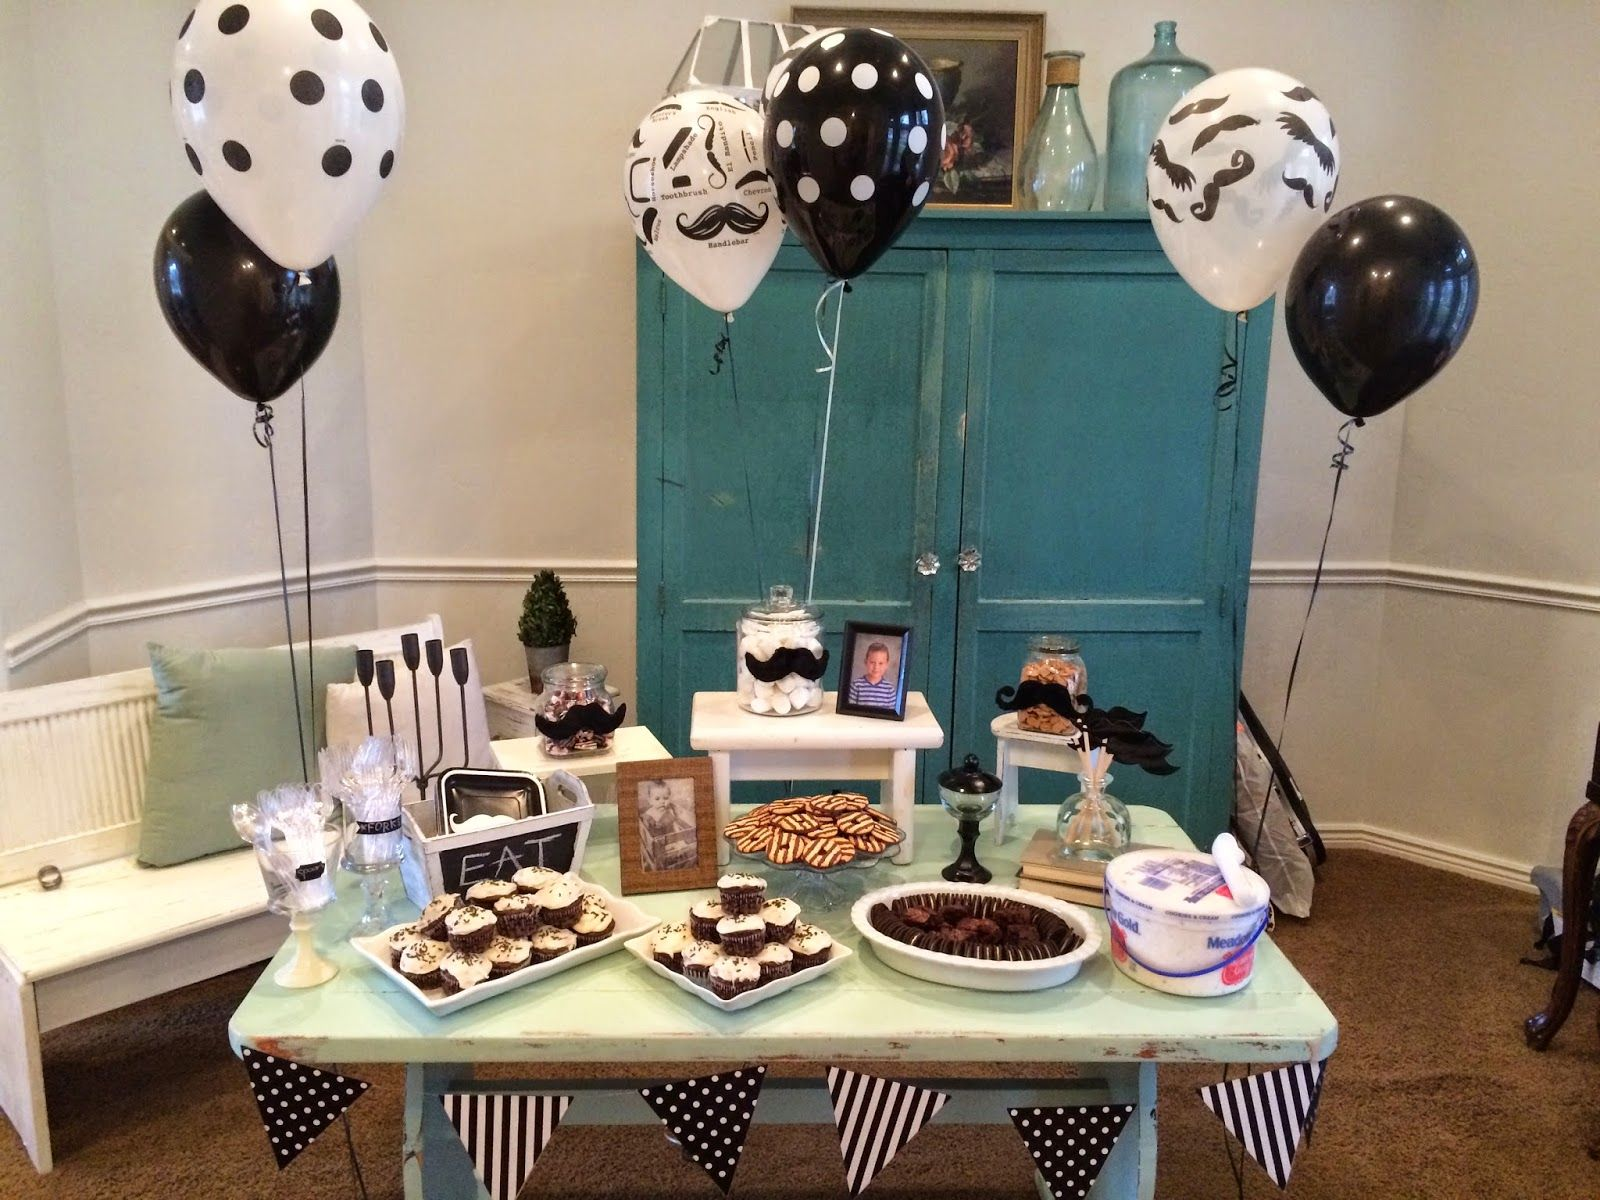 Thereddoor Birthday Party For A 1 Year Old Boy Birthday Party Themes Boy Birthday Parties Mustache Birthday Party